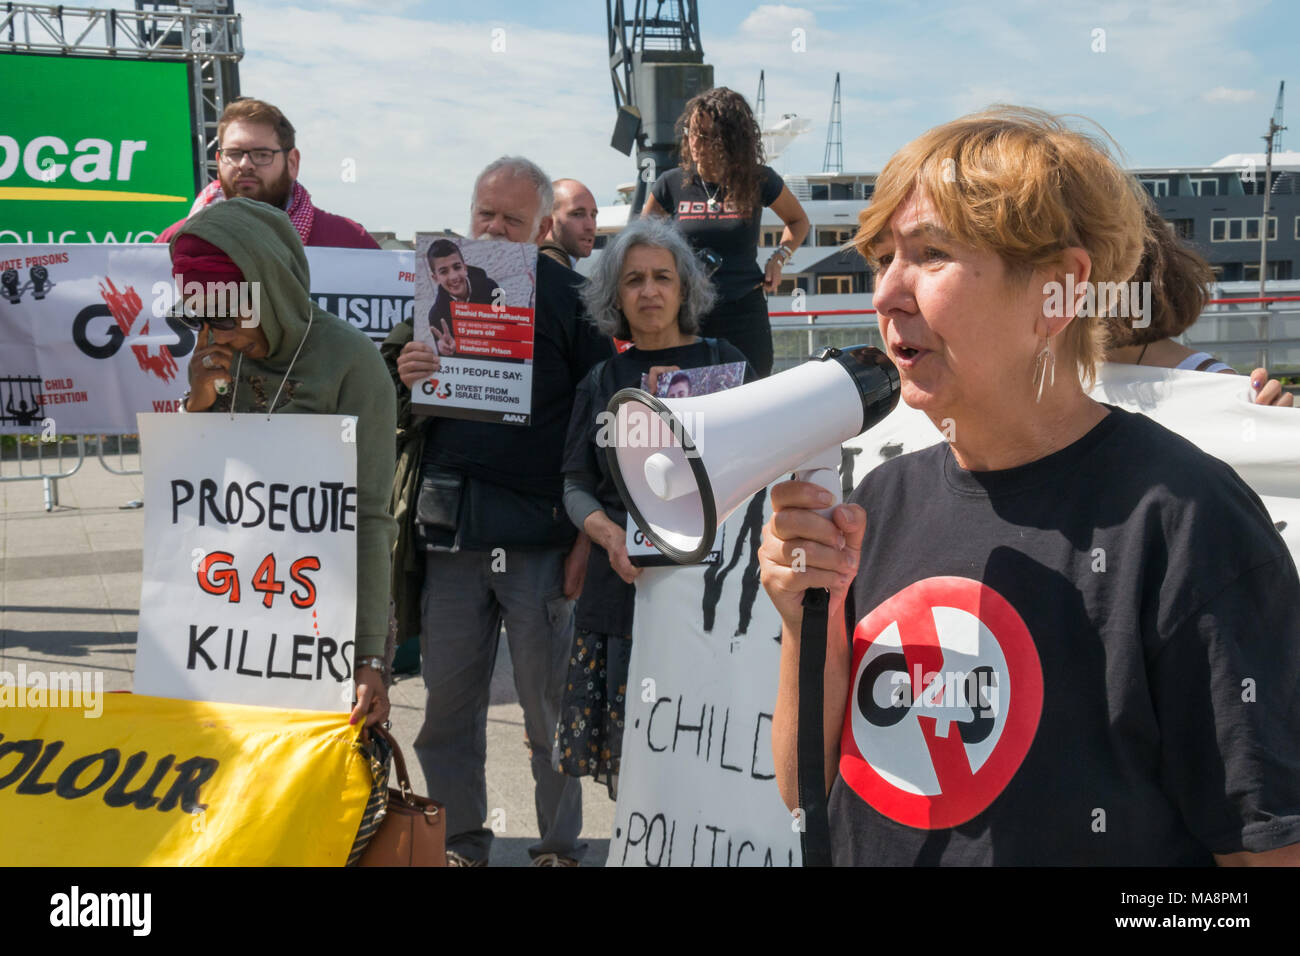 A protester speaks about the homeless protests in Manchester, where g4S have been refusing to allow the homeless to enter the public Library where they provide securty at Stop G4S protest outside G4S AGM at Excel London. Stock Photo